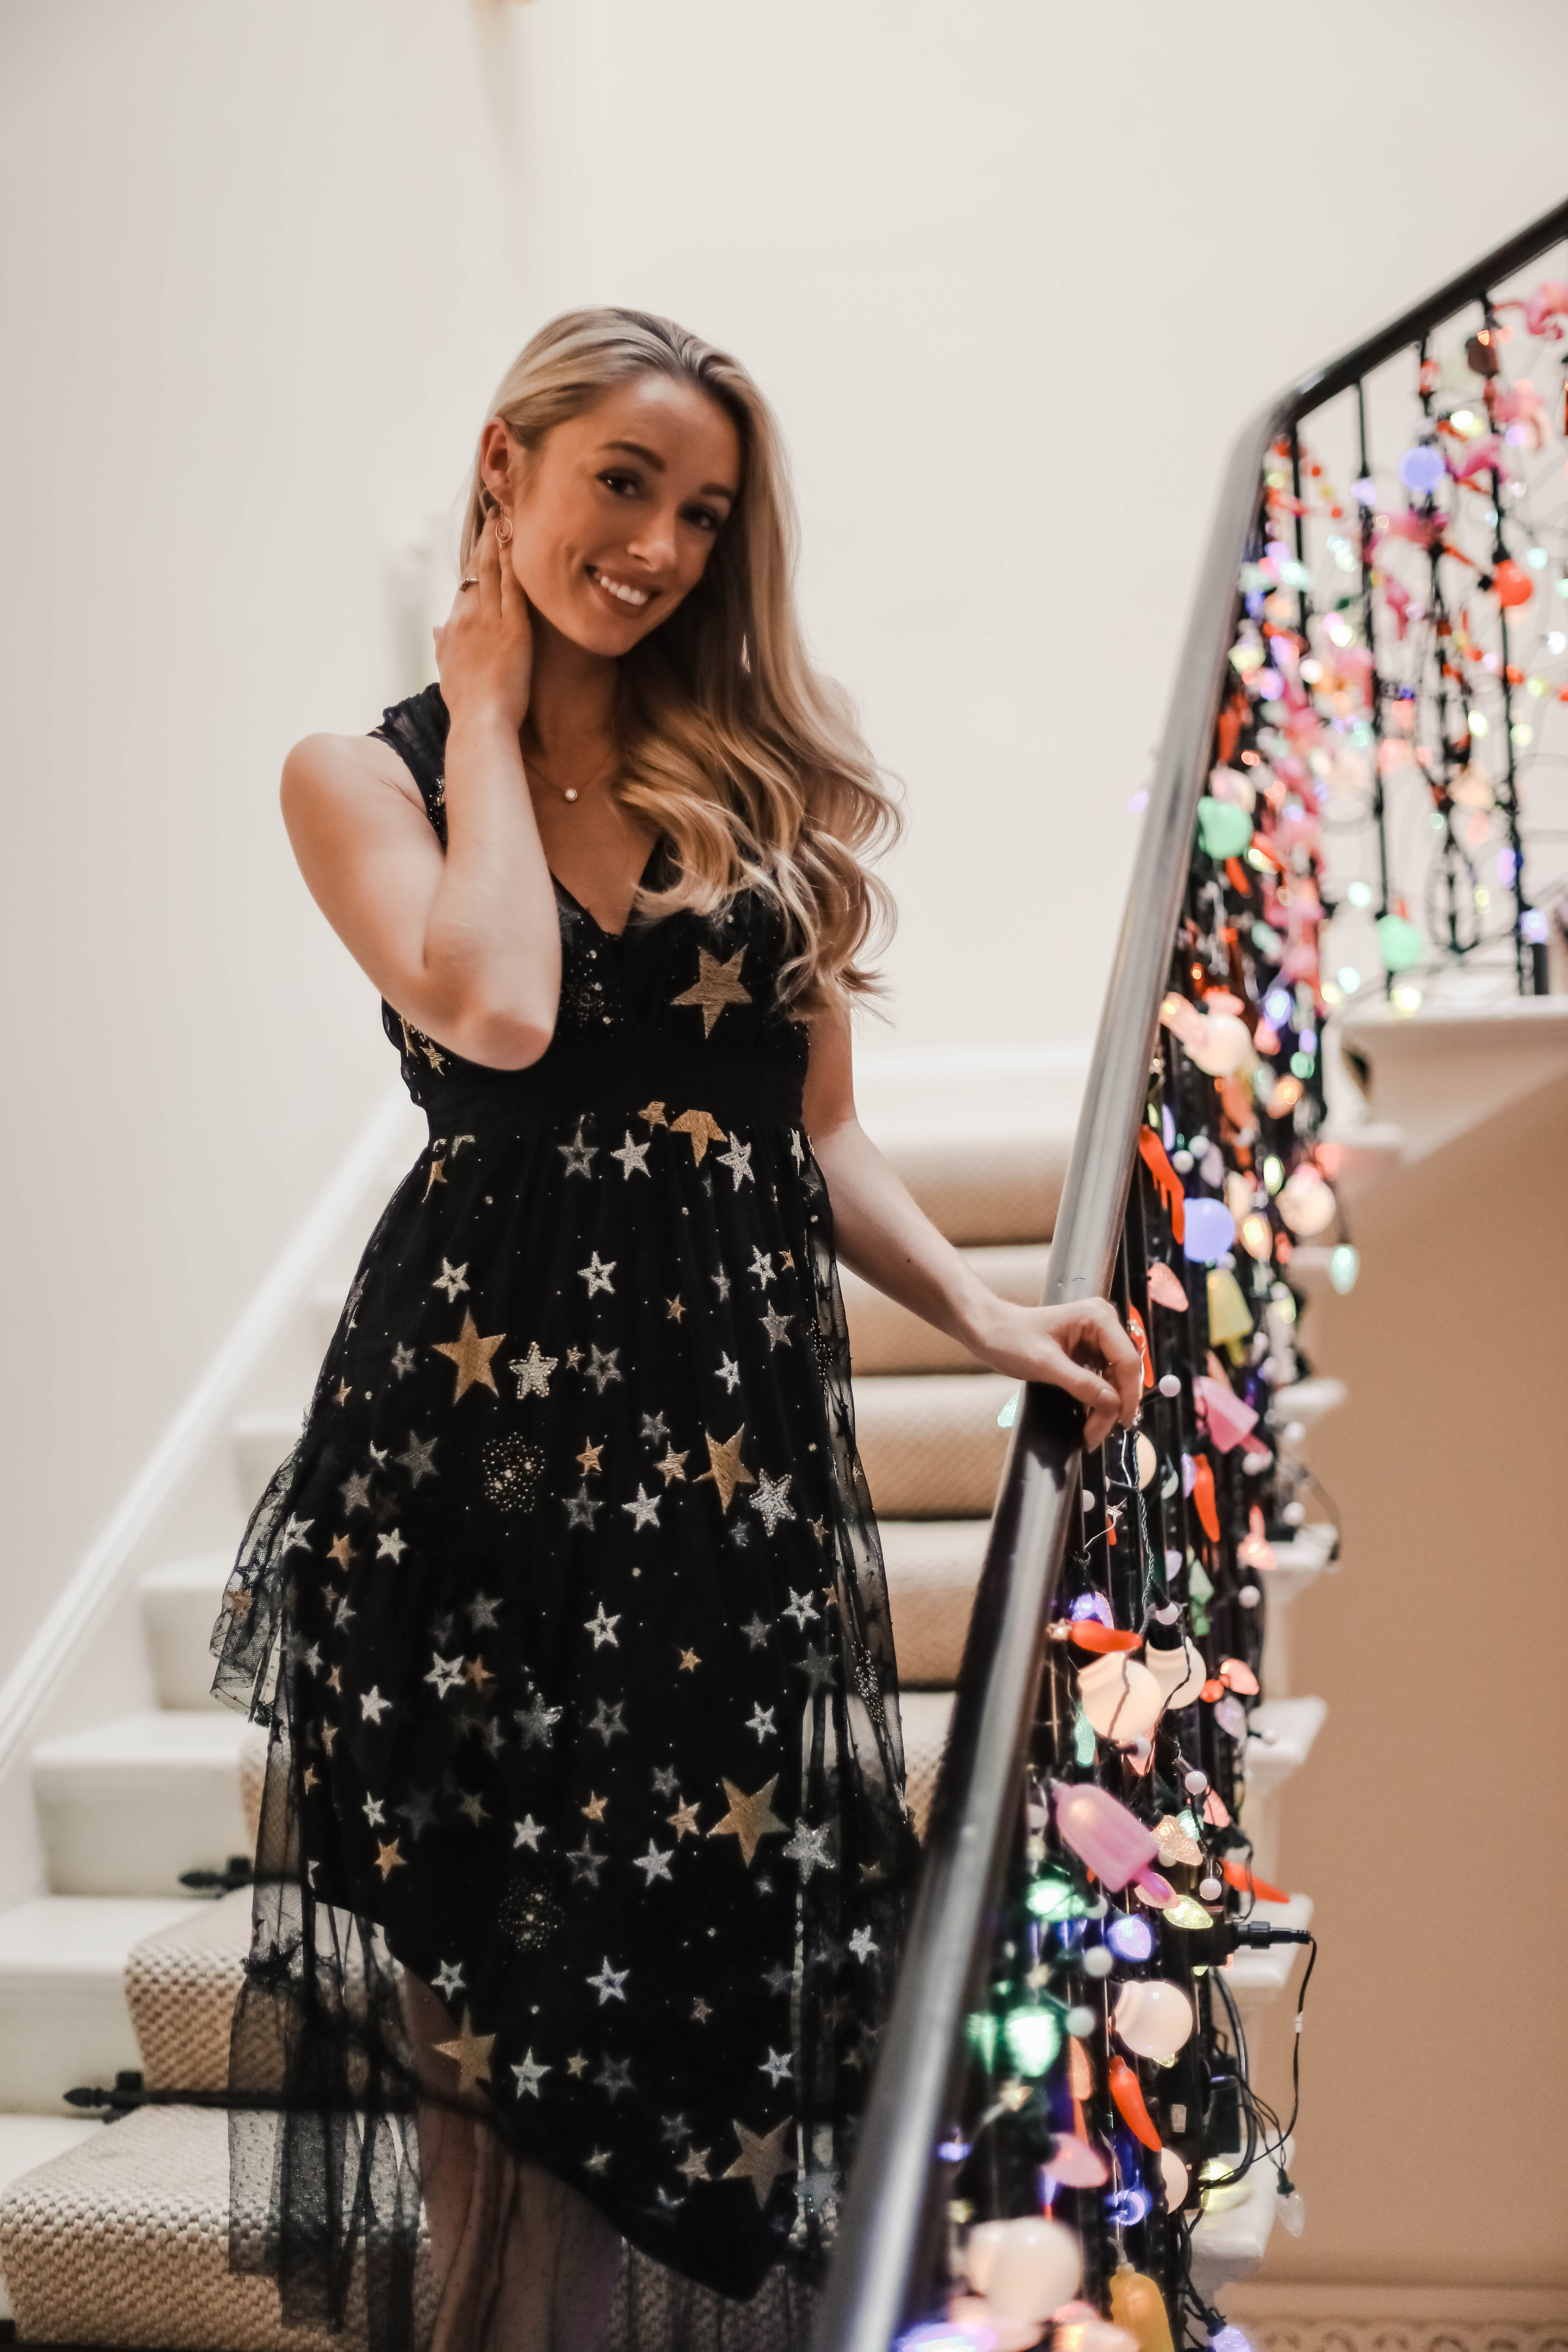 How To Choose The Perfect Christmas Party Dress